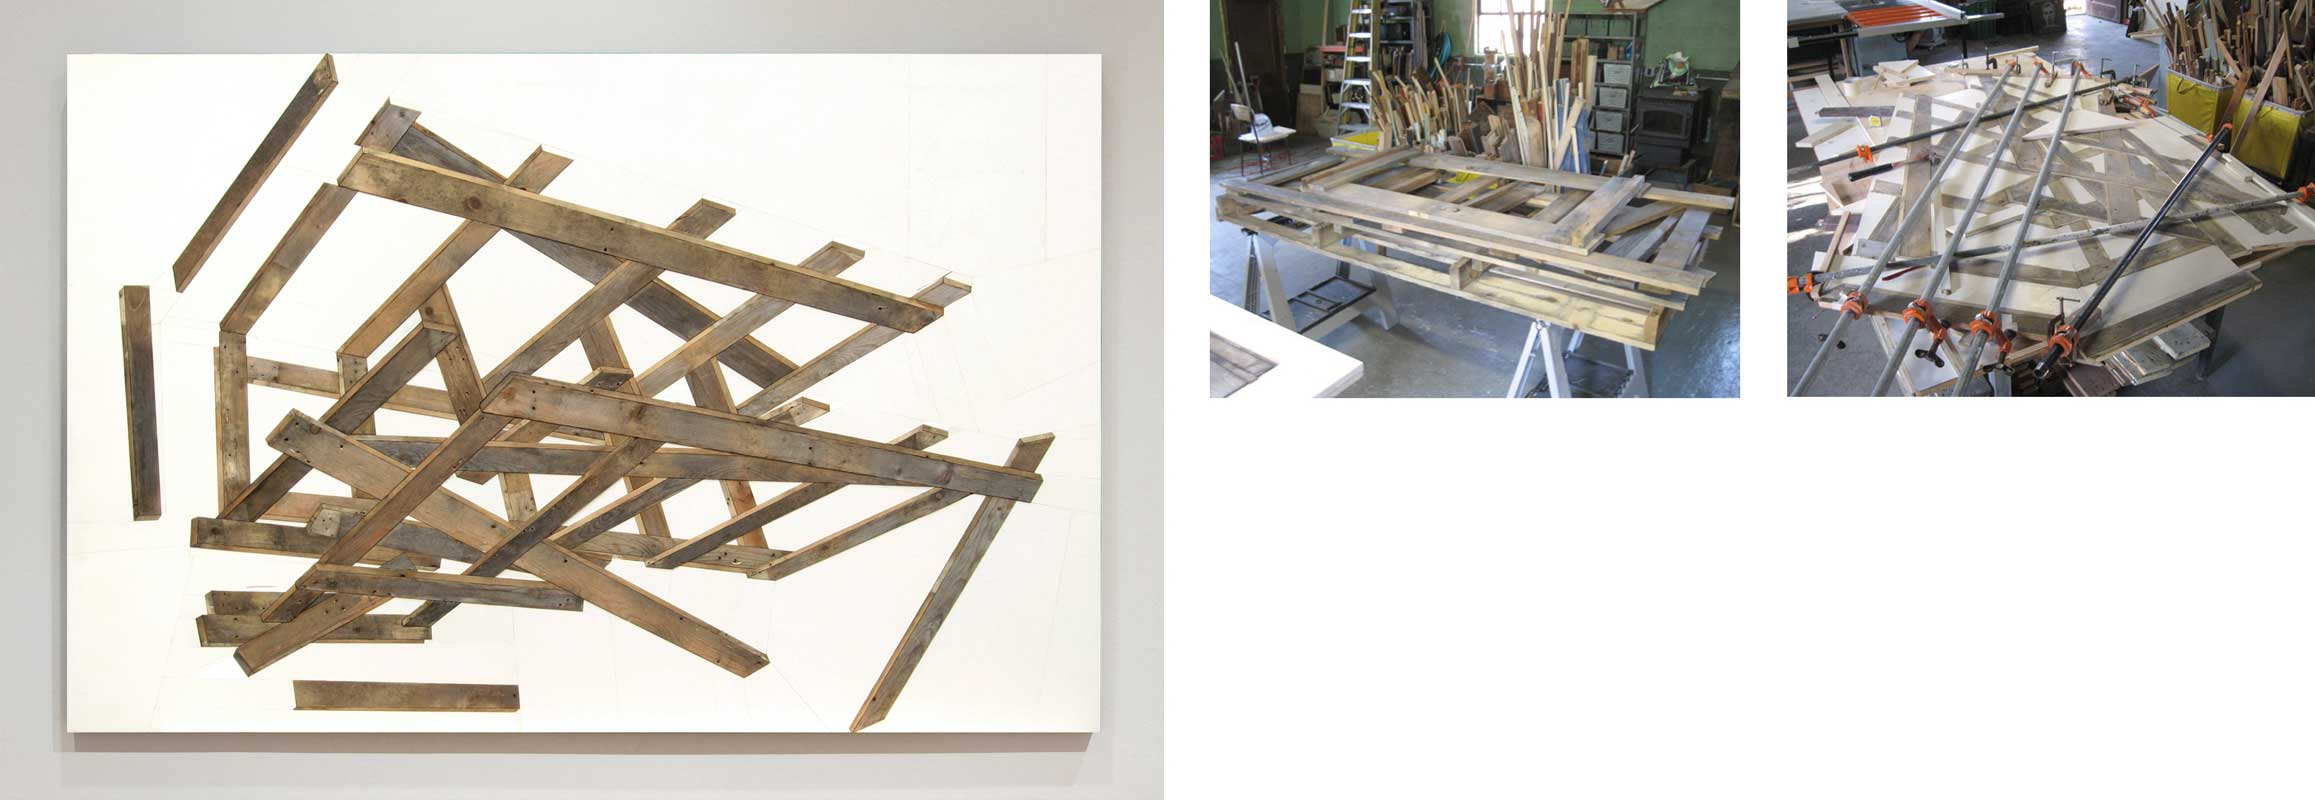 assemblage with found crate